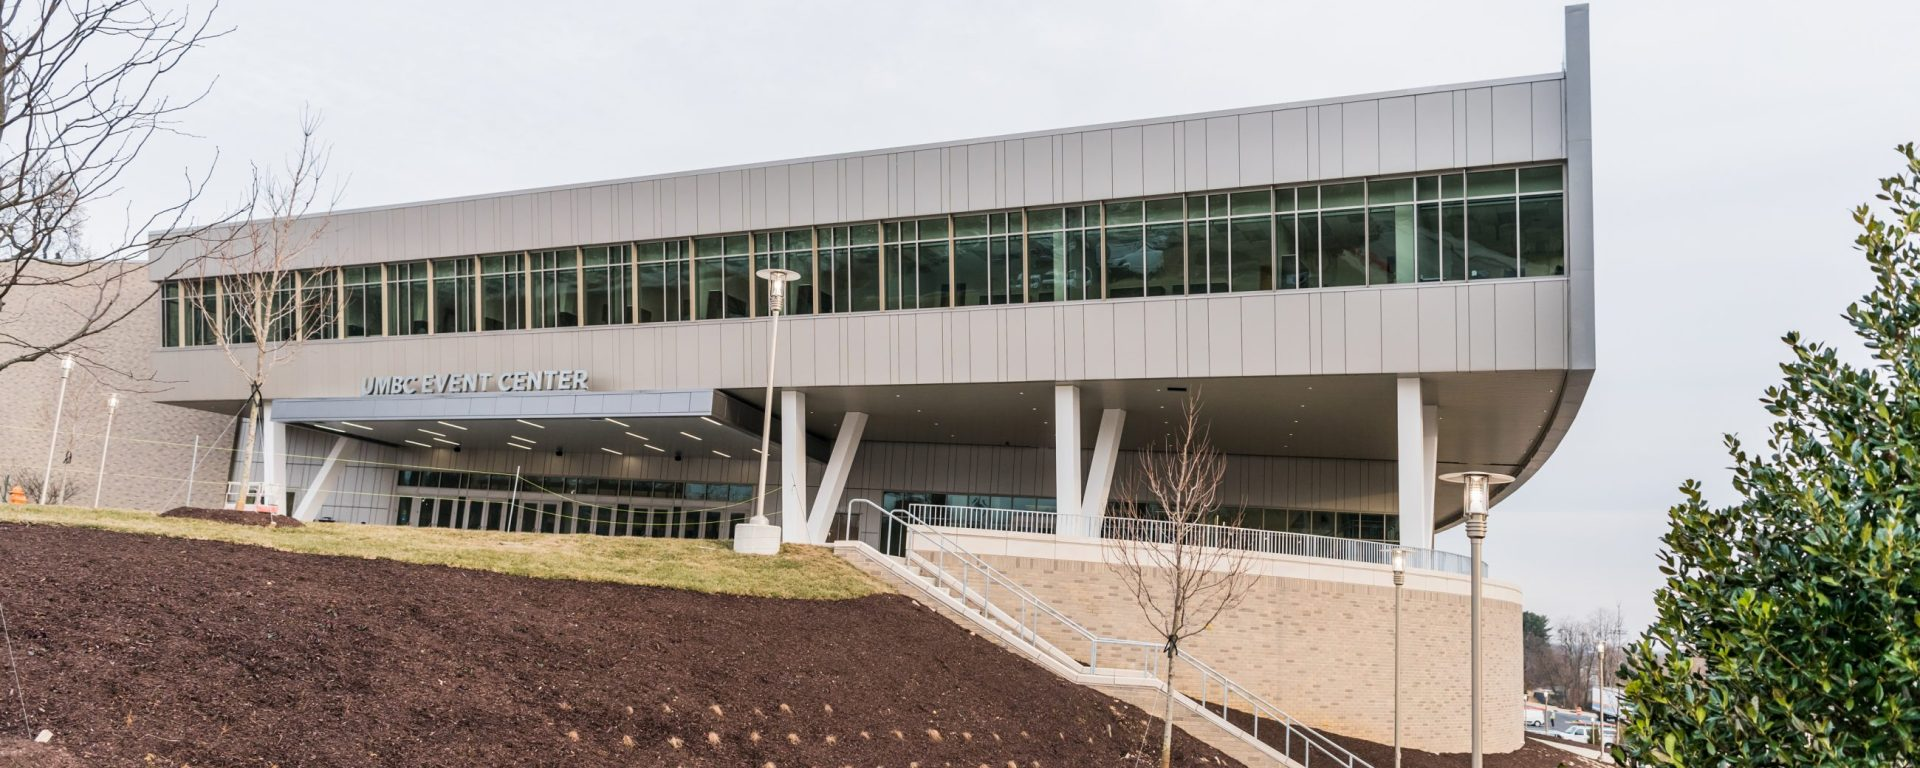 UMBC's new Event Center opening on 2/3/18